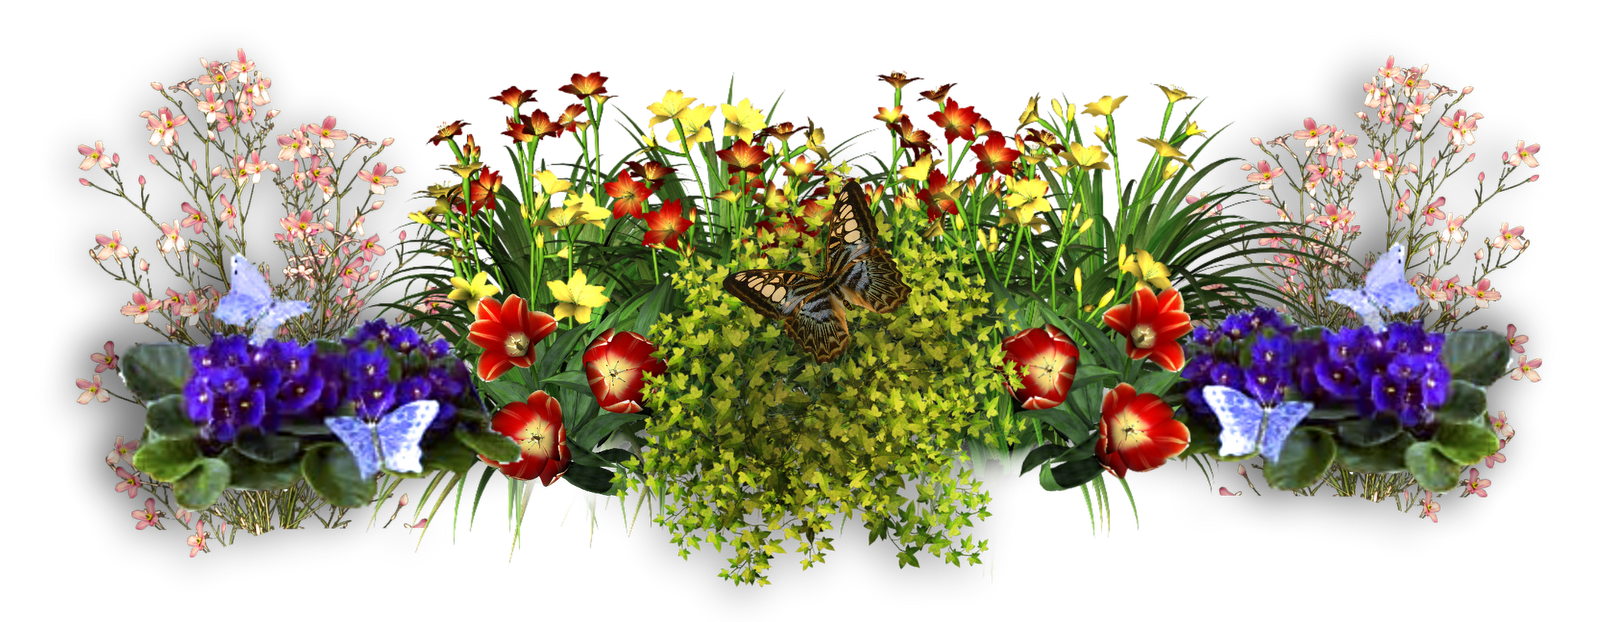 Clipart box flower. Flowers png high resolution